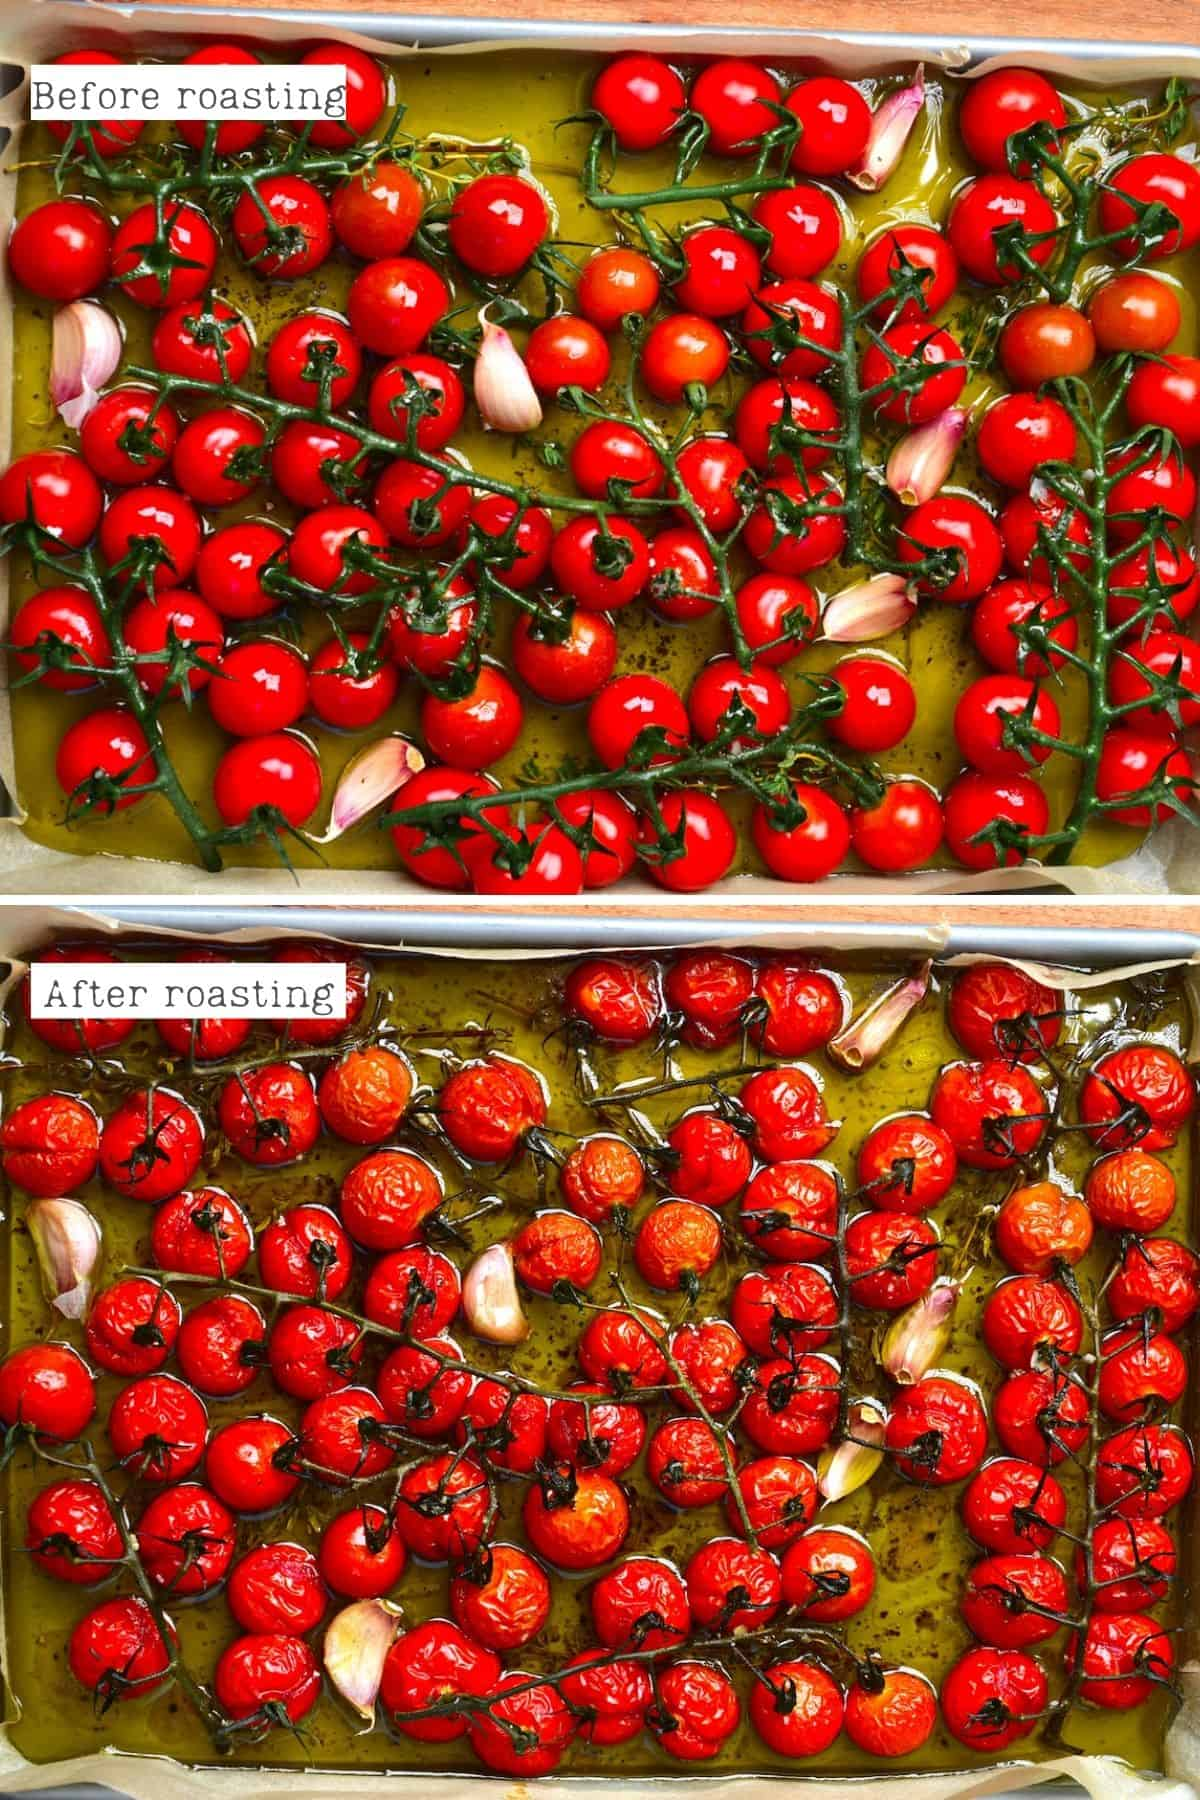 Before and after roasting tomatoes